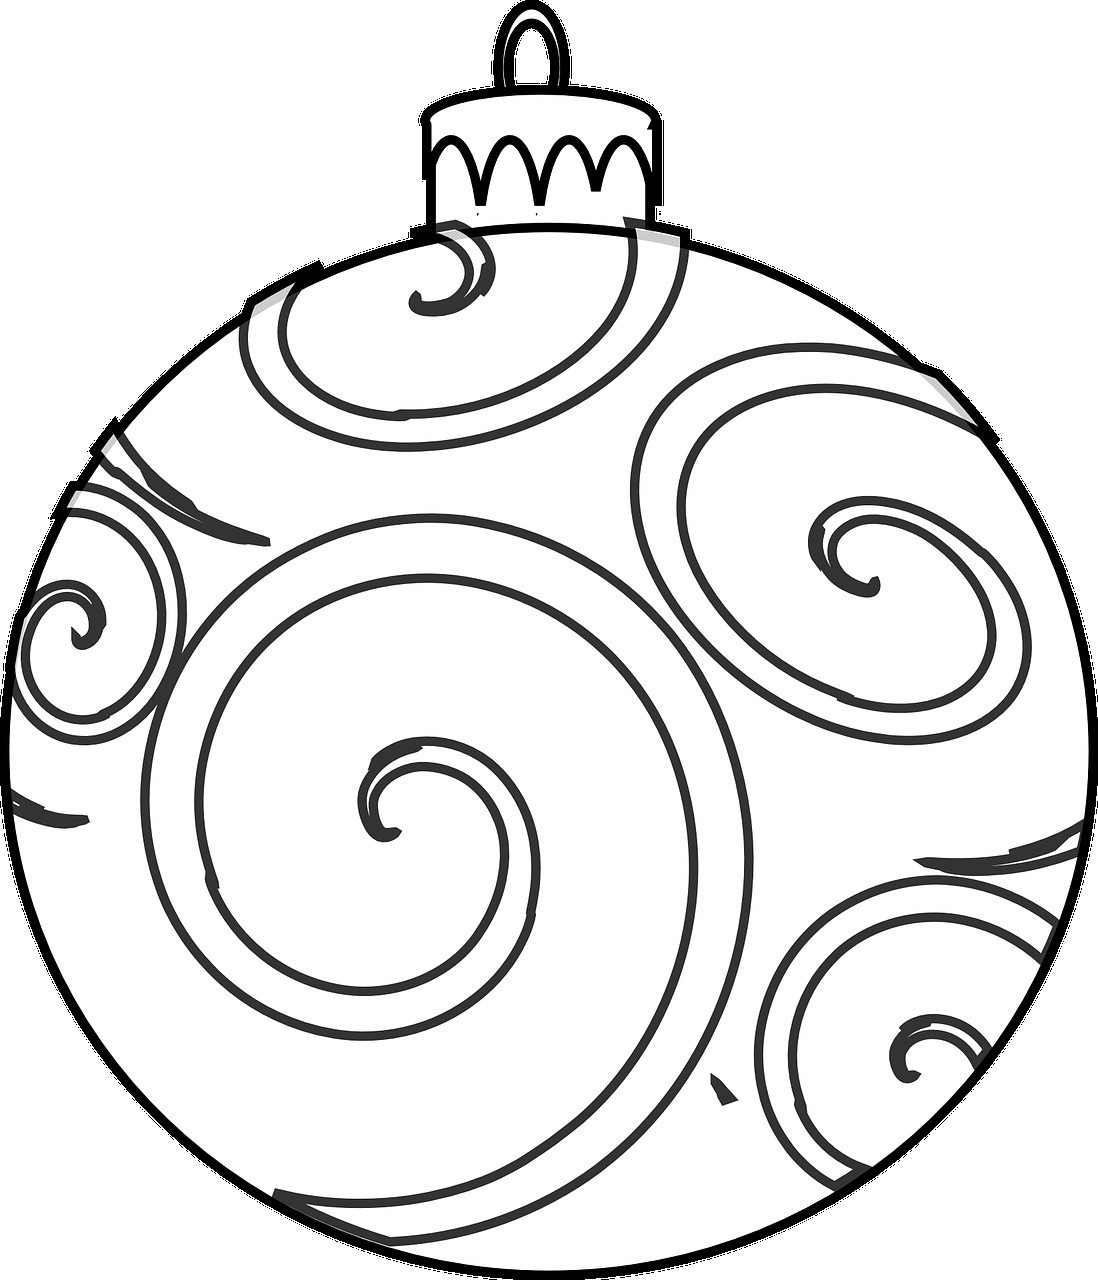 Xmas Ornaments Coloring Pages With Ornament New Christmas Tree Printable In 13